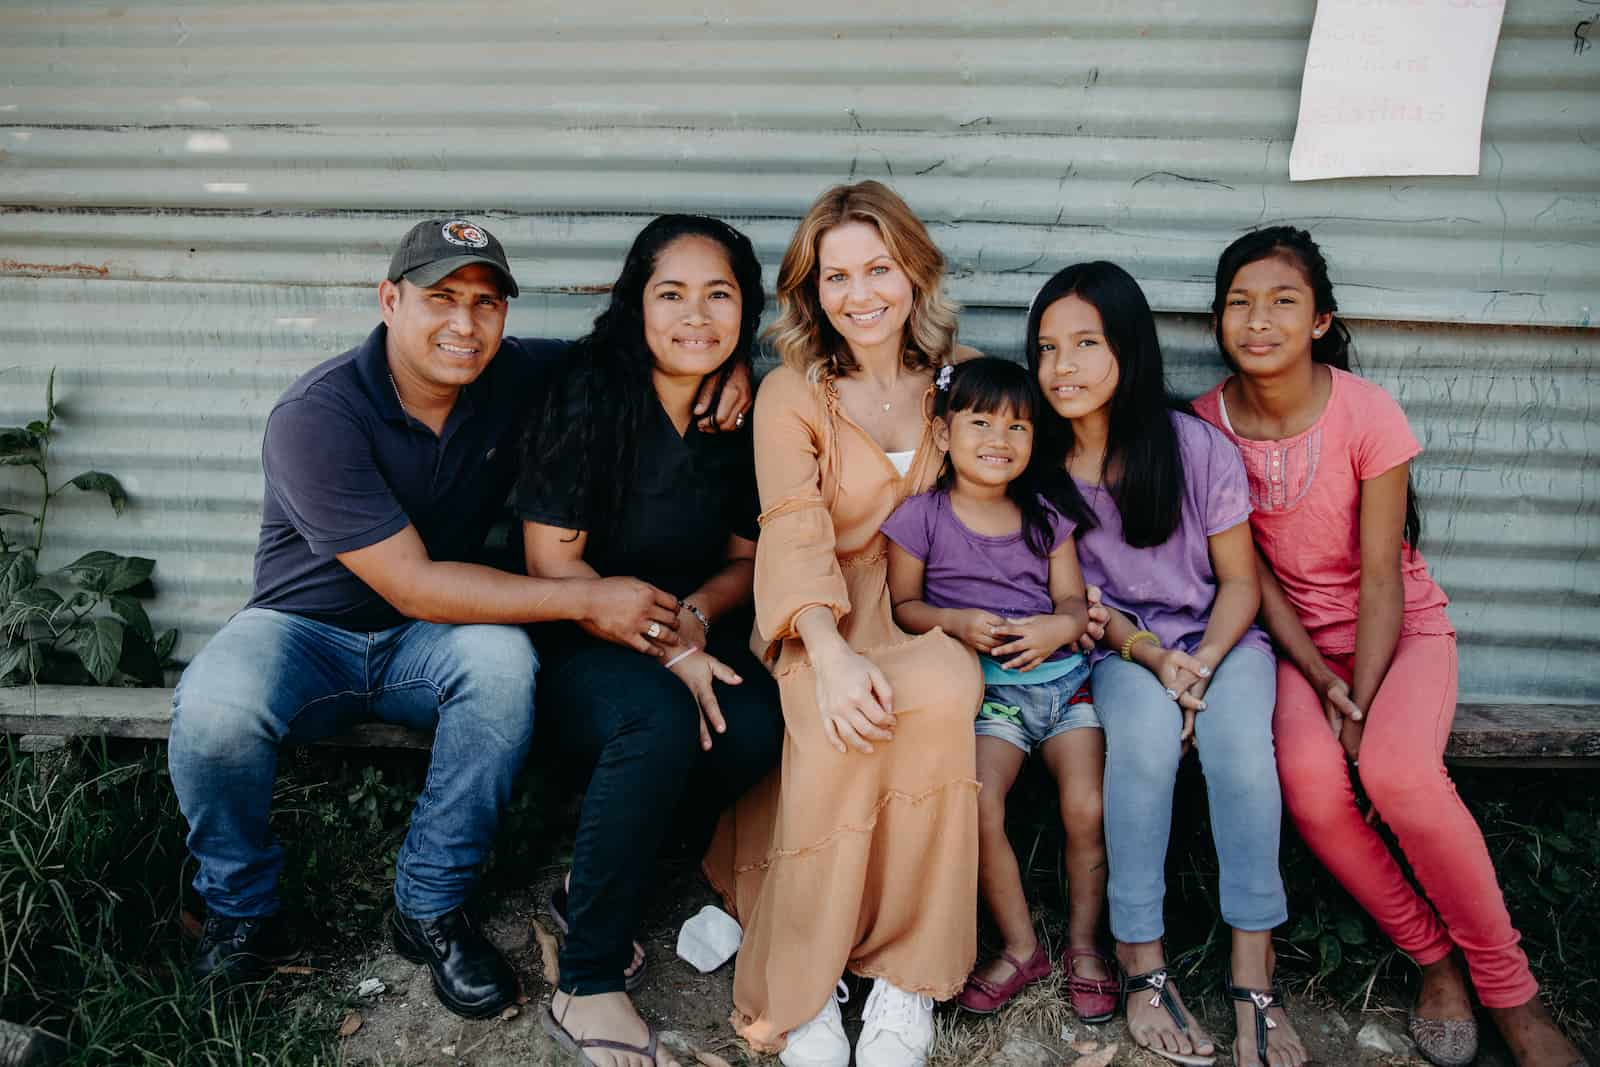 Candace Cameron Bure sits with a family with three girls.